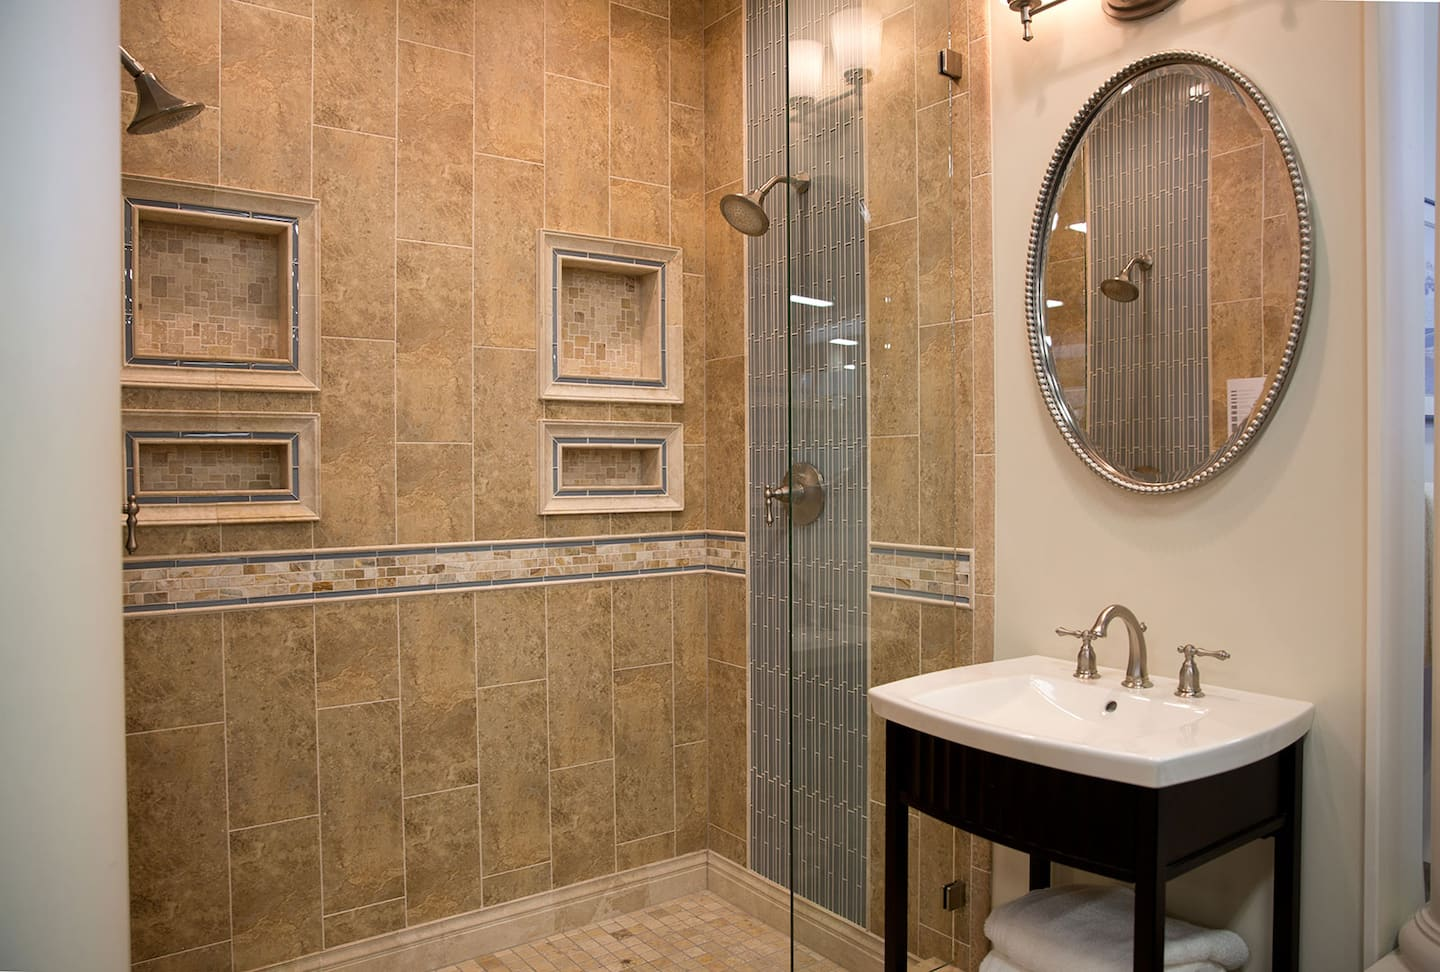 Bathroom tile trends for your remodel angies list shower with ceramic tile dailygadgetfo Gallery